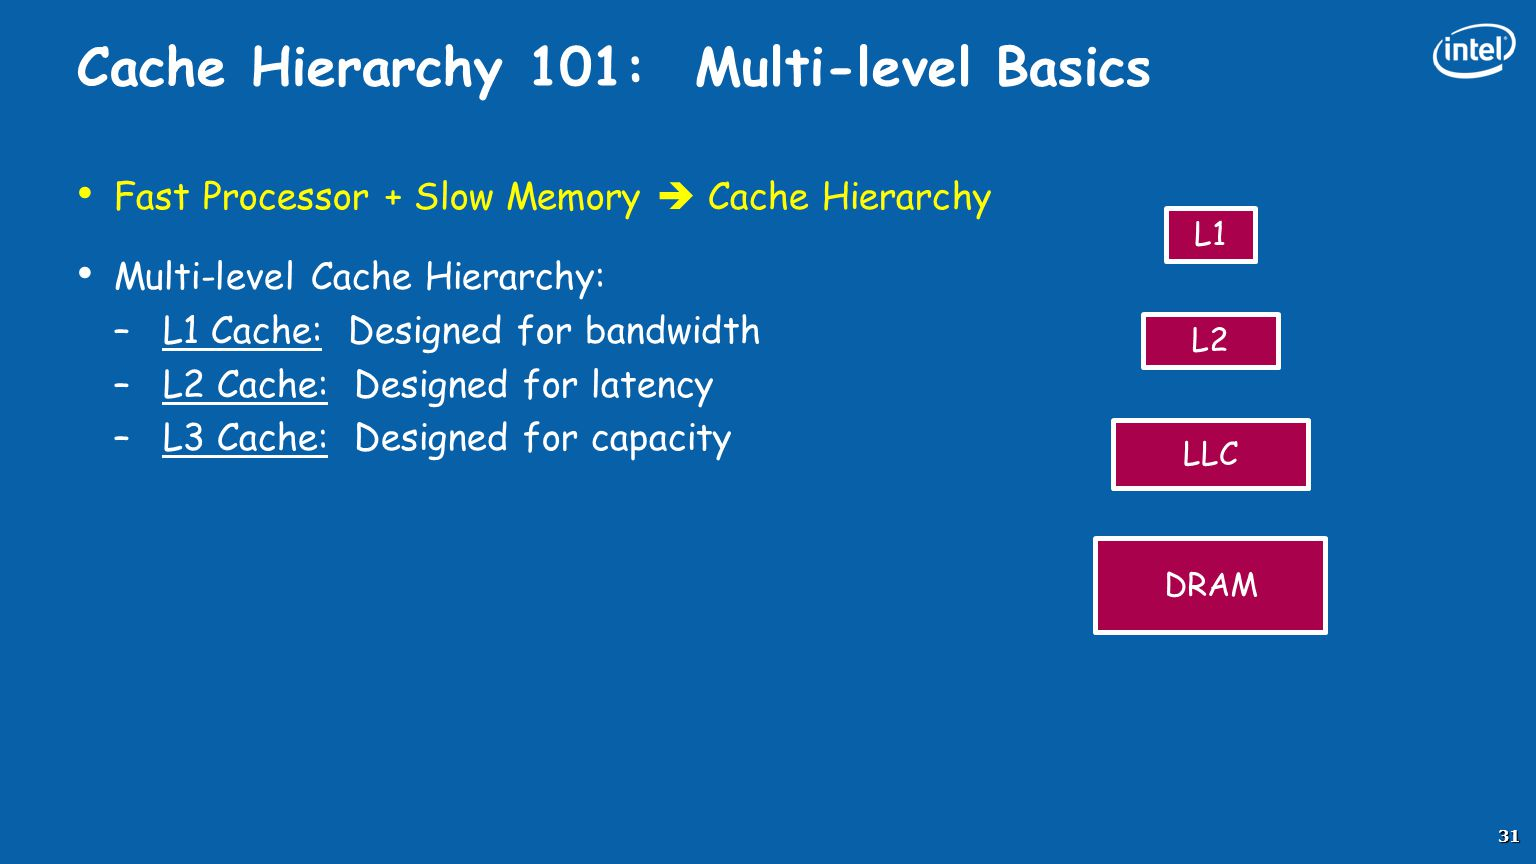 Cache Hierarchy 101: Multi-level Basics